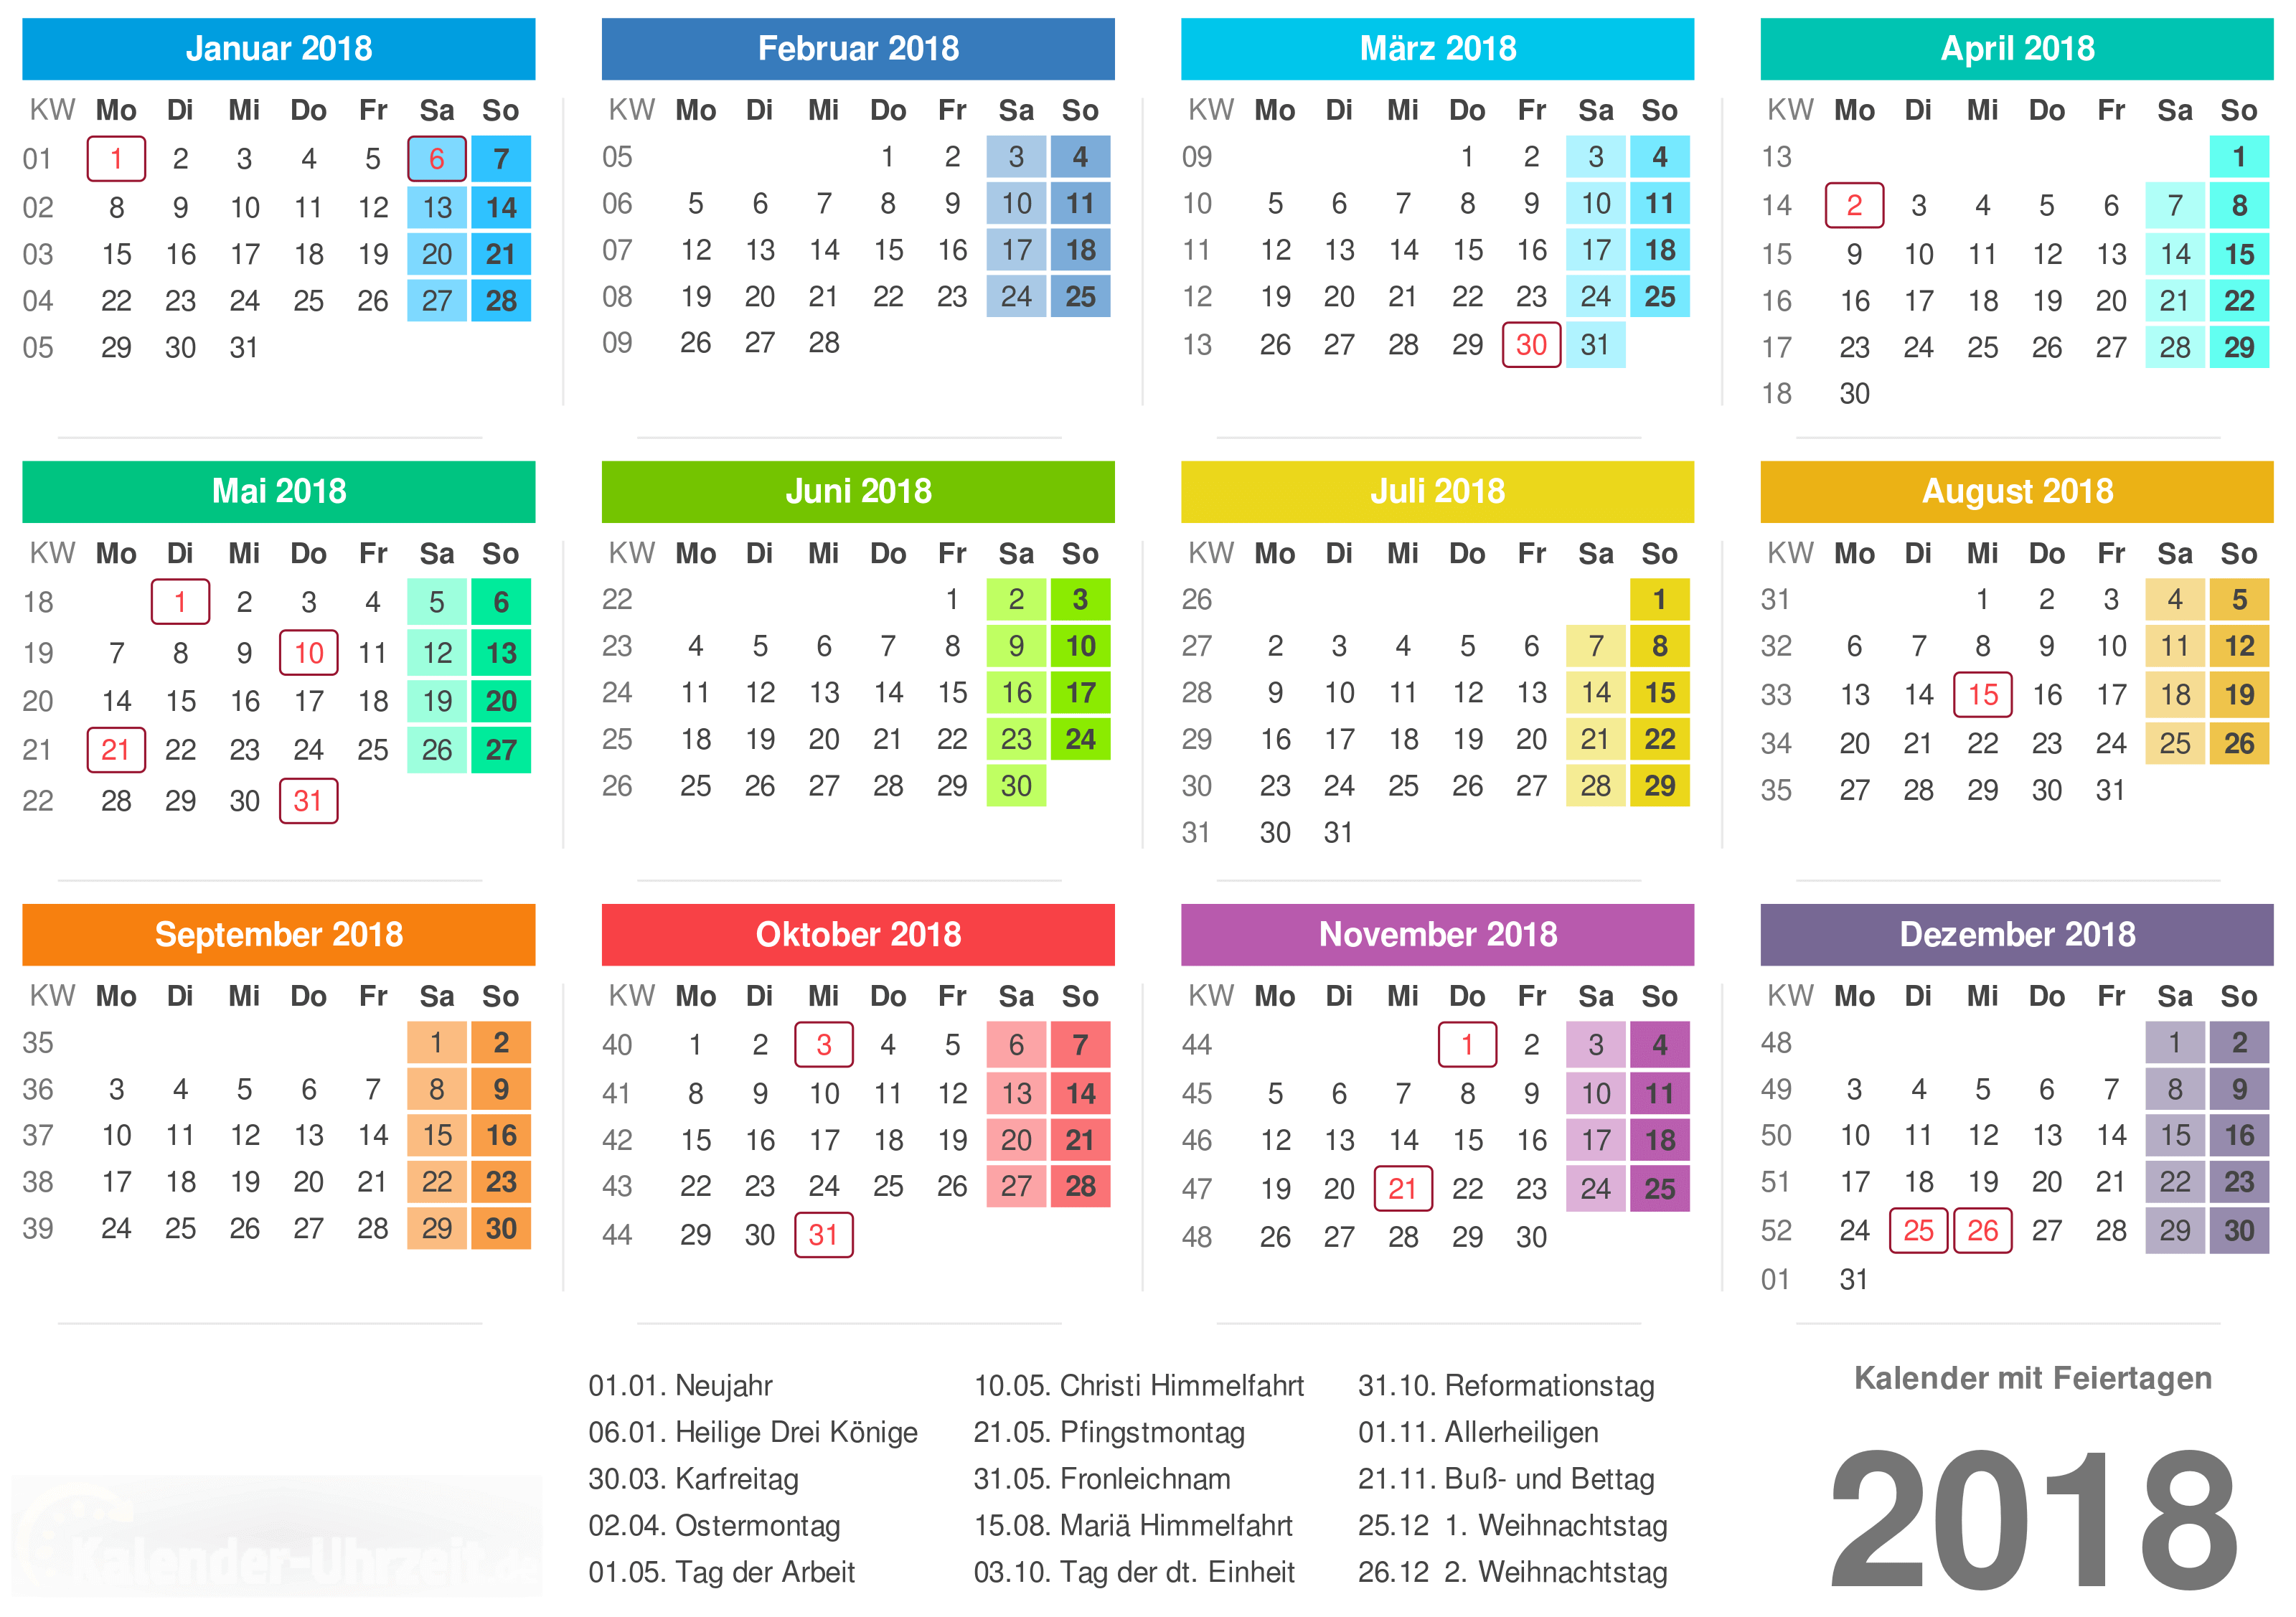 Kalender 2018 mit kw 2018 calendar printable for free download kalender 2018 mit kw stopboris Gallery